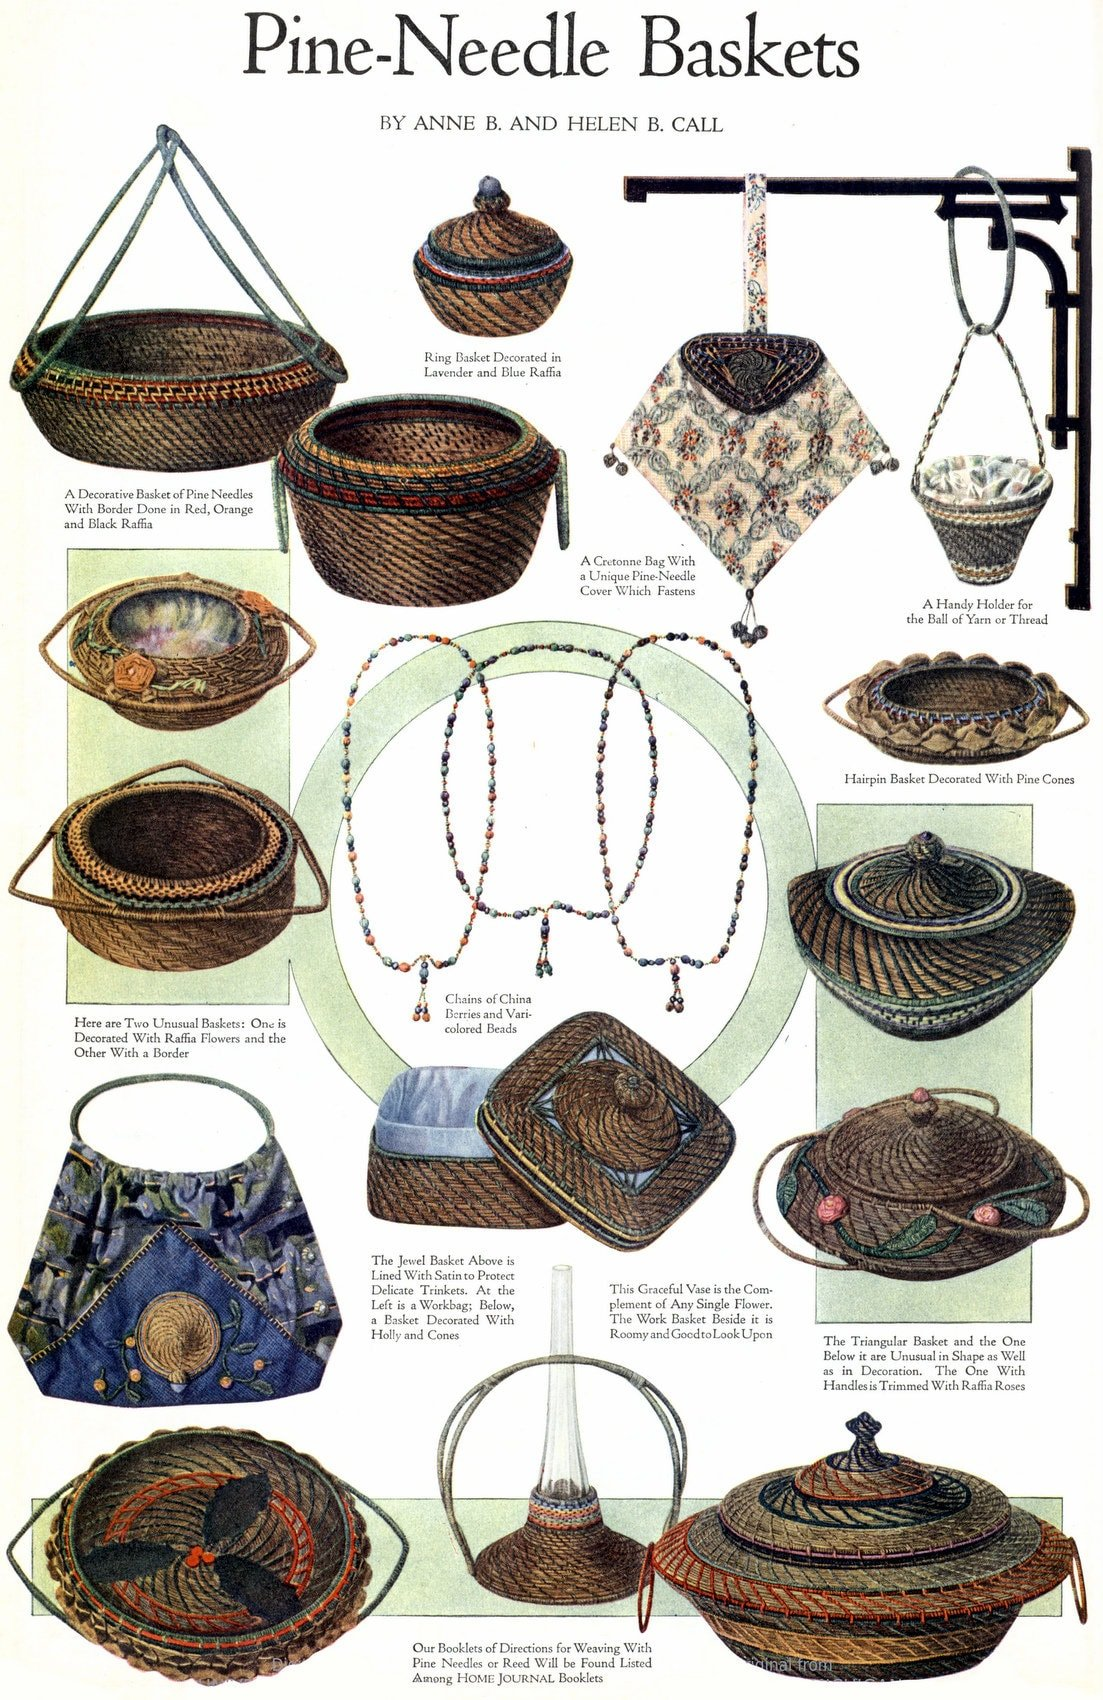 Pine needle baskets and crafts (1920)